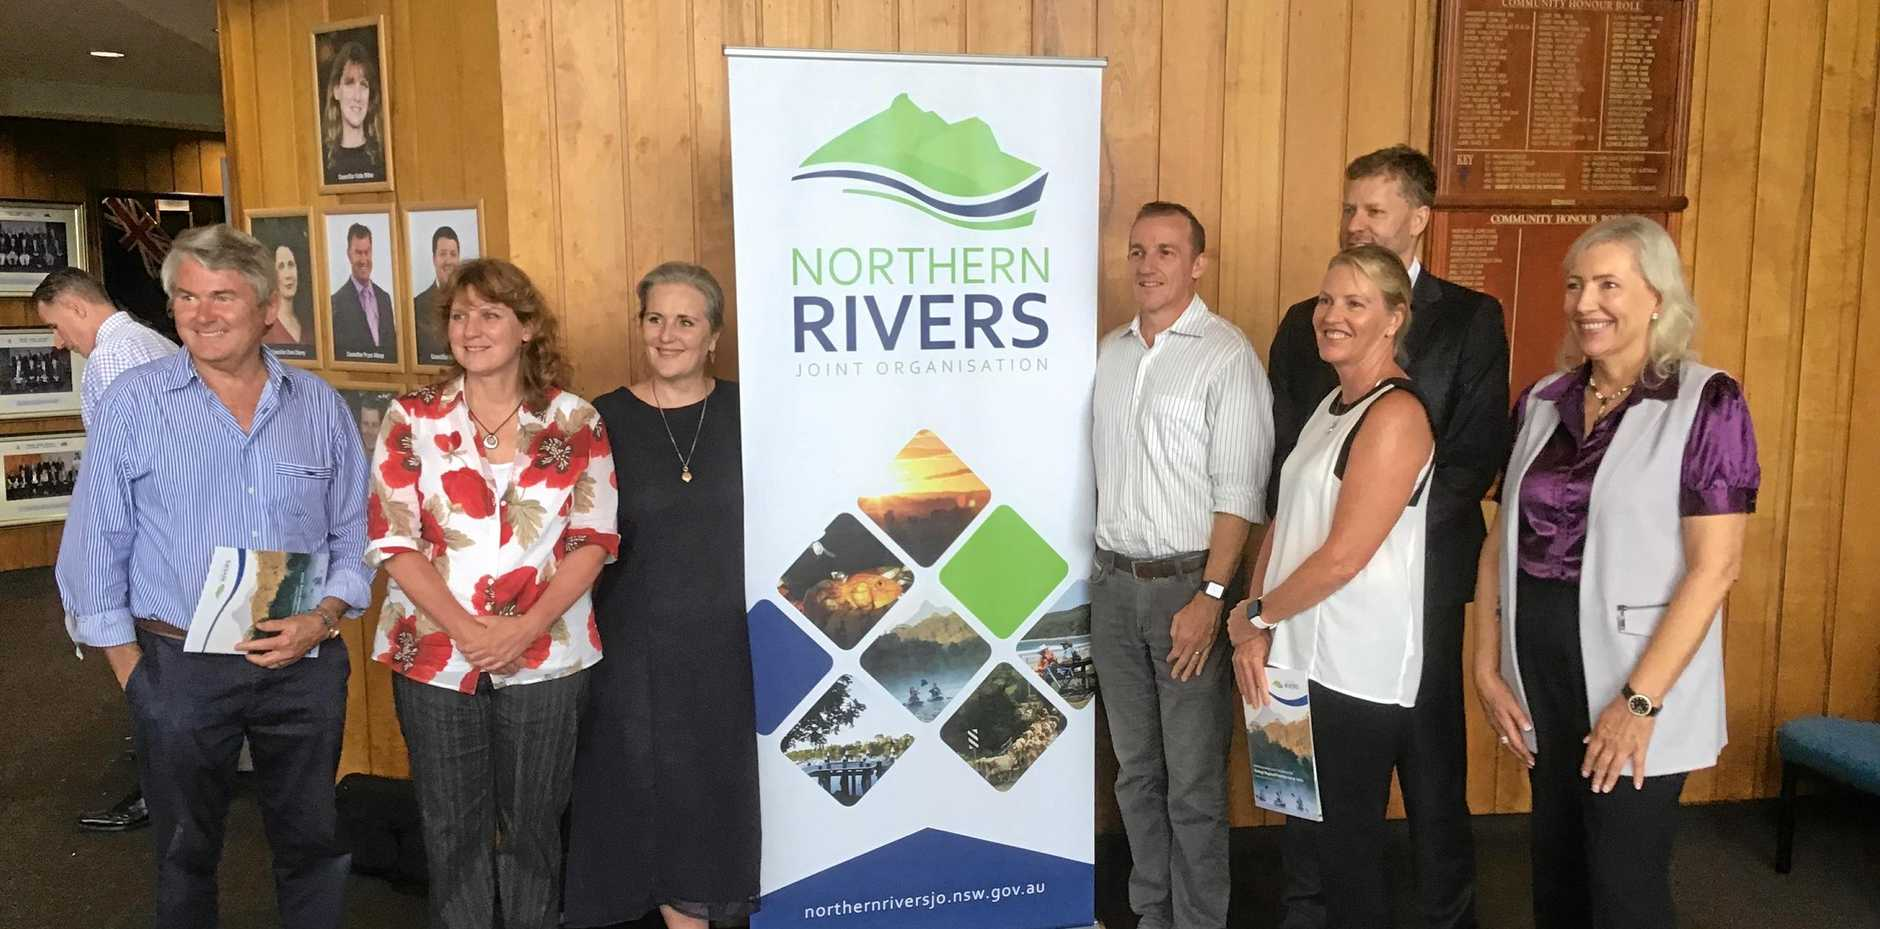 The Northern Rivers Joint Organisation has launched its priorities for the region.